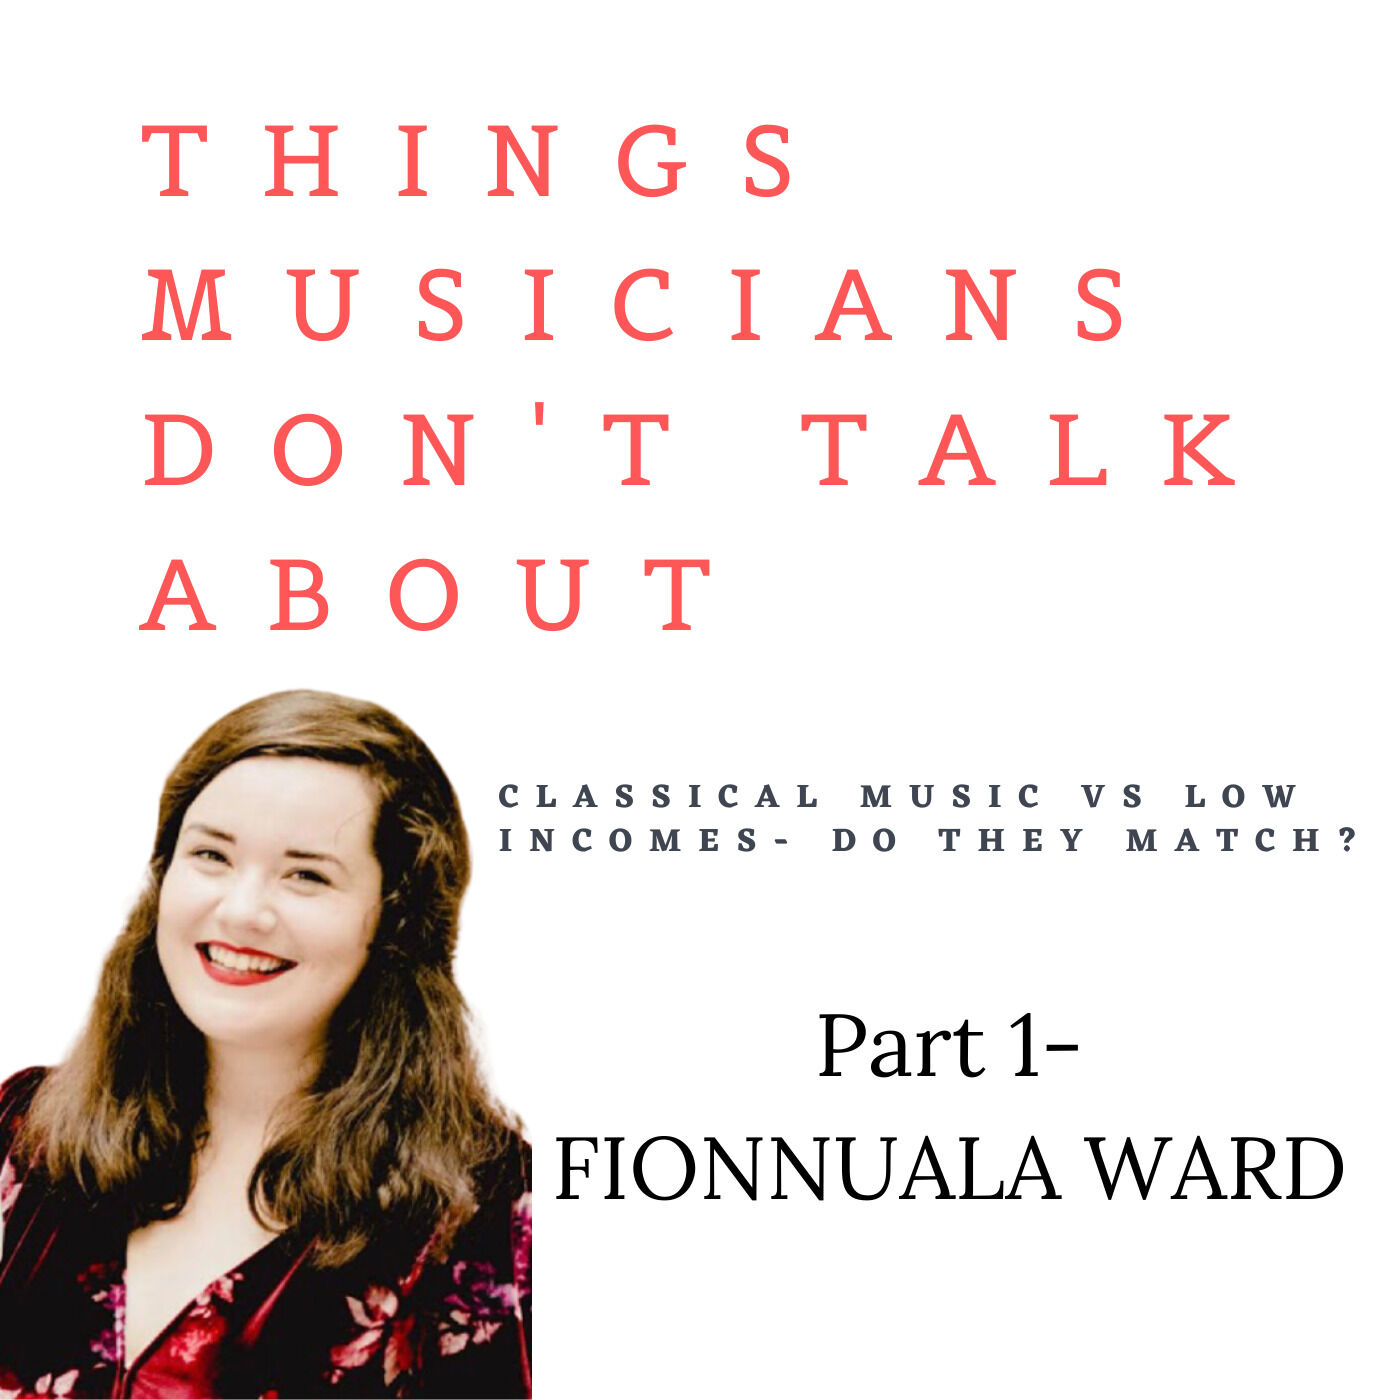 Episode 11- Fionnuala Ward (classical music vs low incomes part 1)